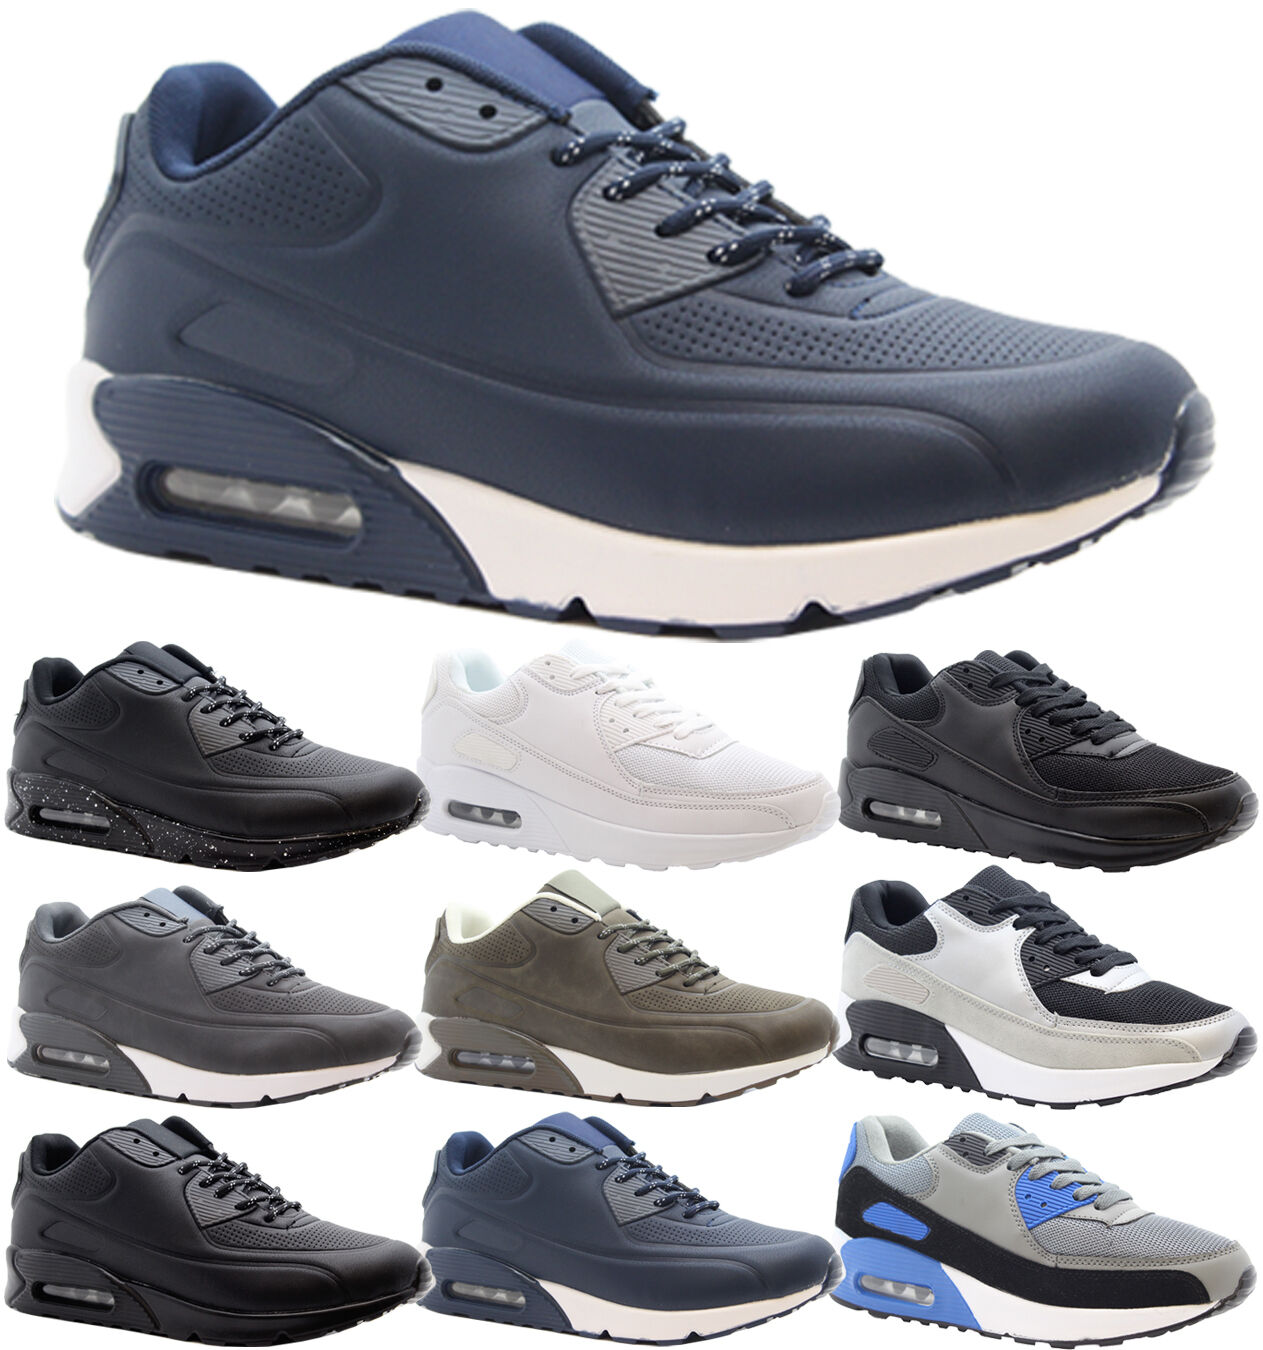 Mens Casual Shock Running Fitness Gym Boys Shock Casual Absorbing Sports Trainers Shoes Size 7e09c6